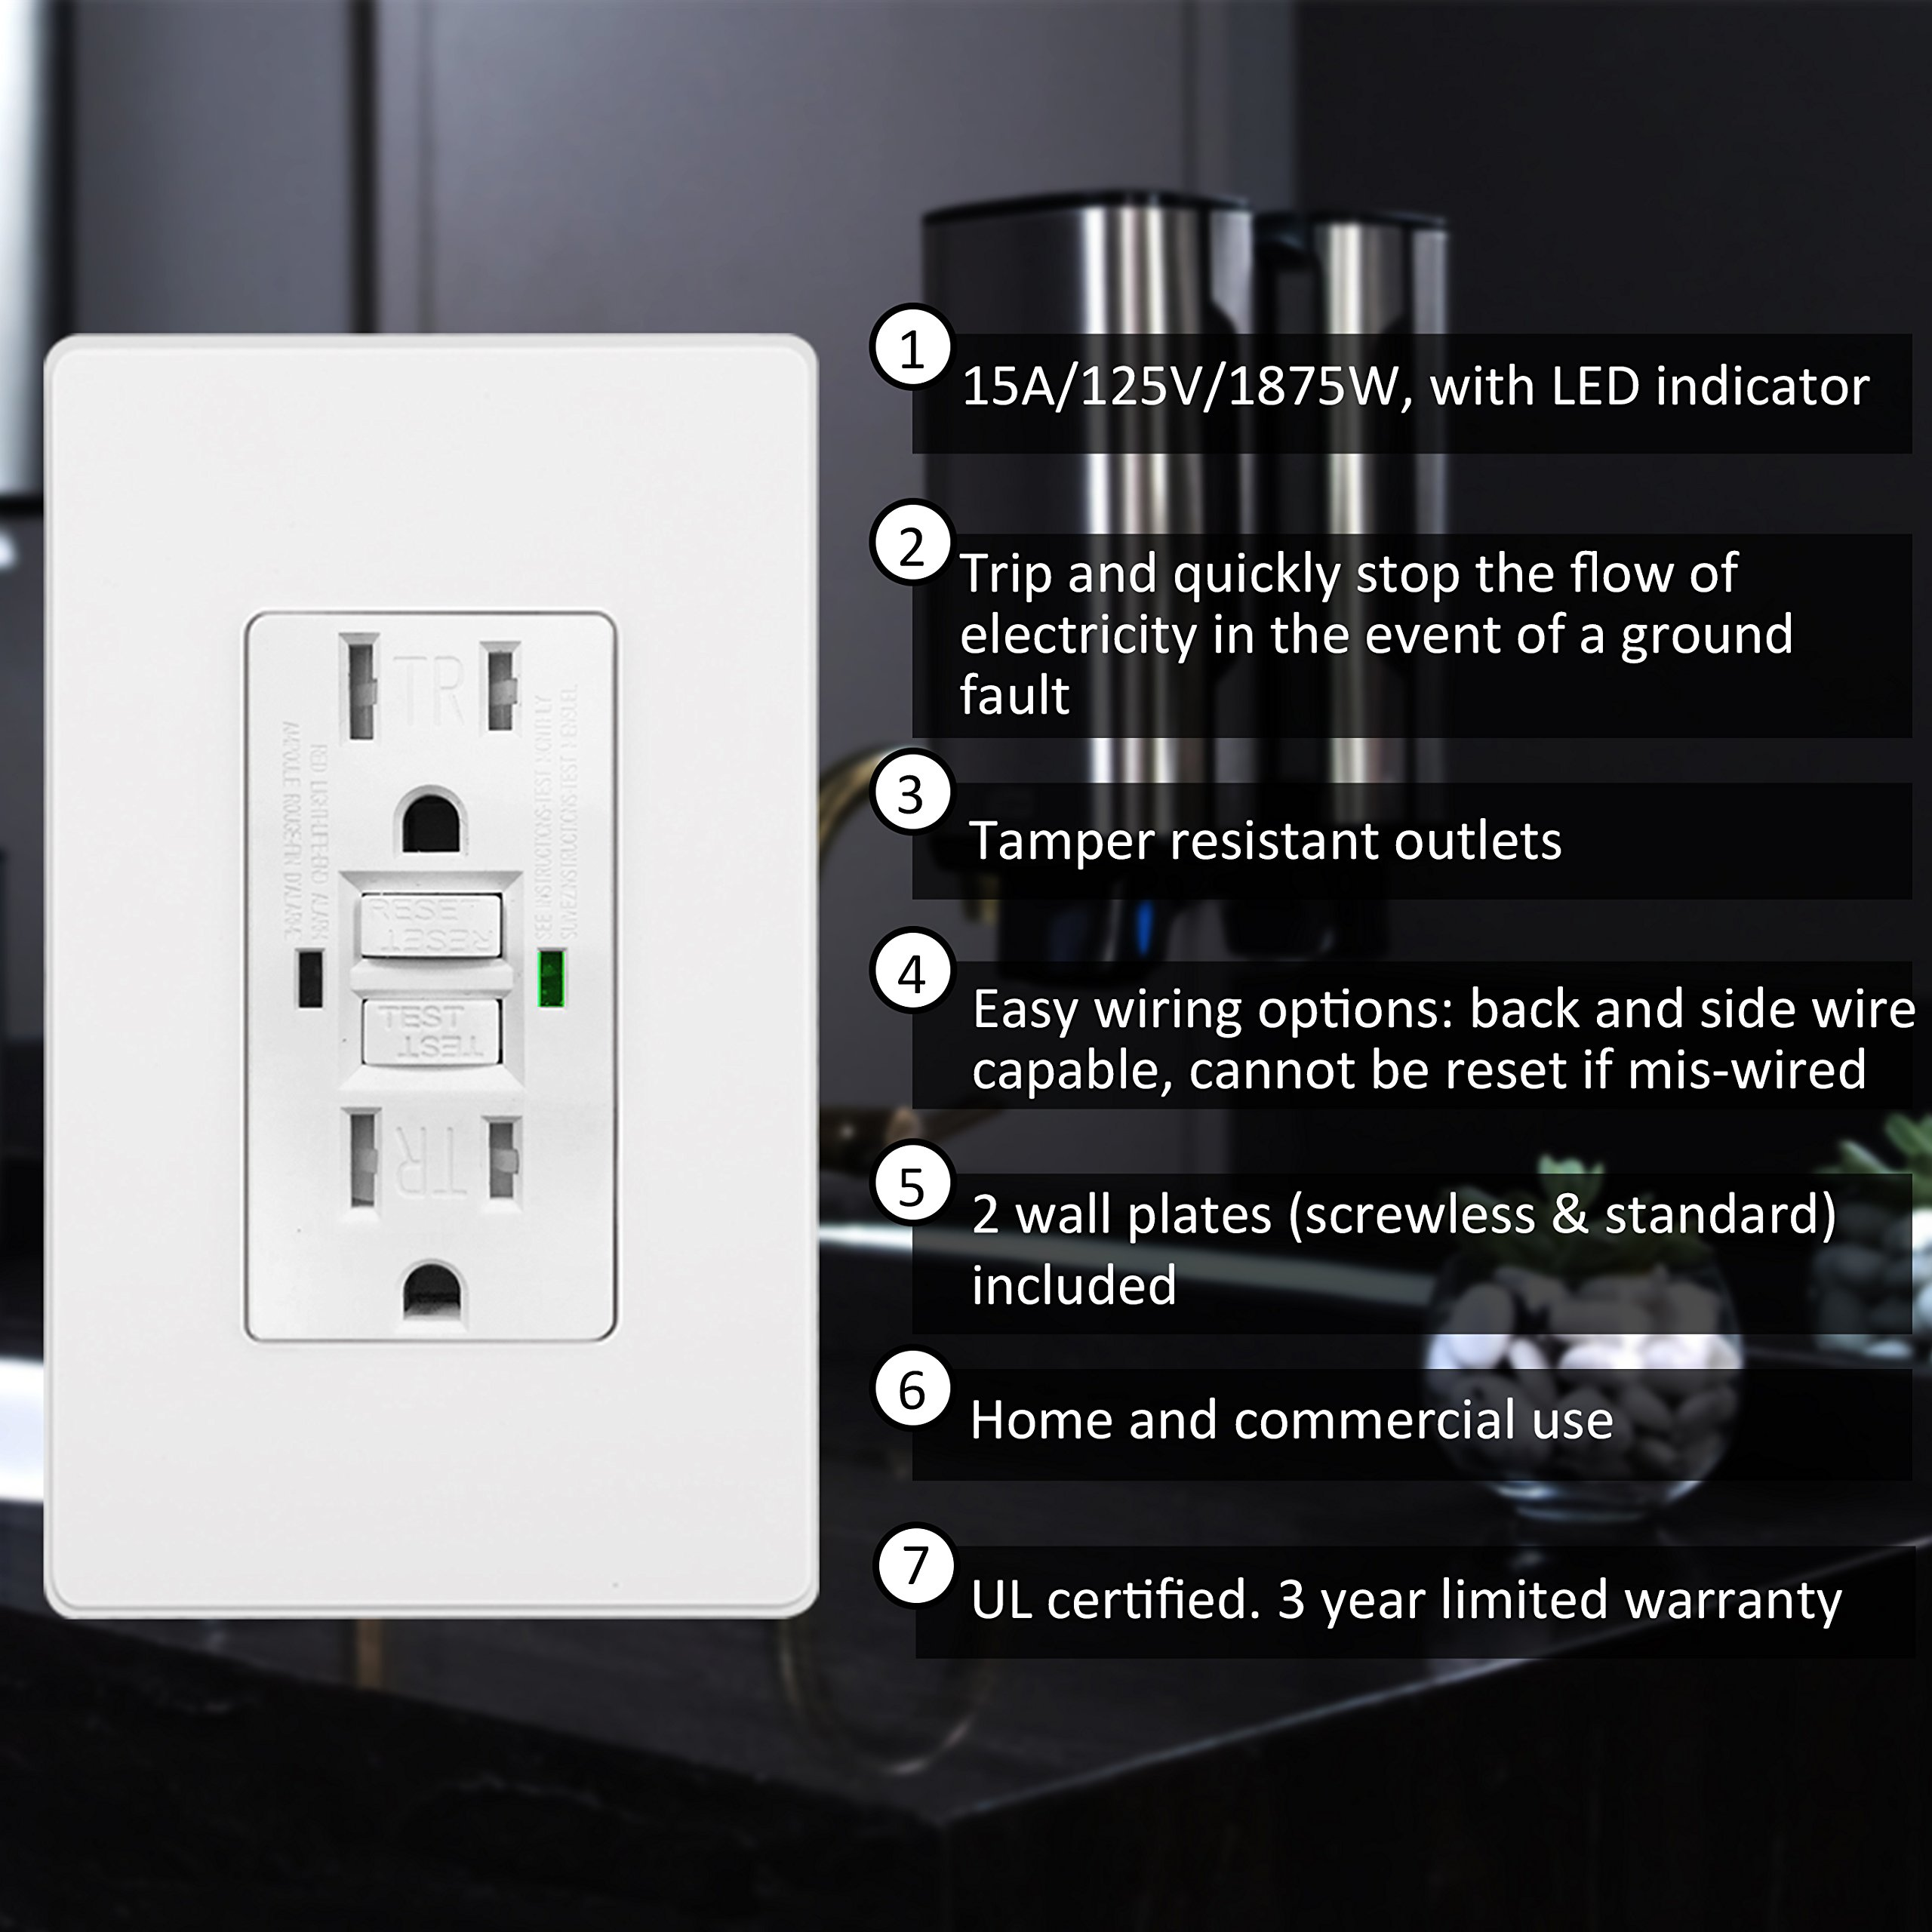 [10 Pack] BESTTEN 15A Dual Indicator Self Test GFCI Receptacle, 15A/125V/1875W, Tamper Resistant Outlet, 2 Wall Plates and Screws Included, Auto-Test Function, UL Certified, White by BESTTEN (Image #2)